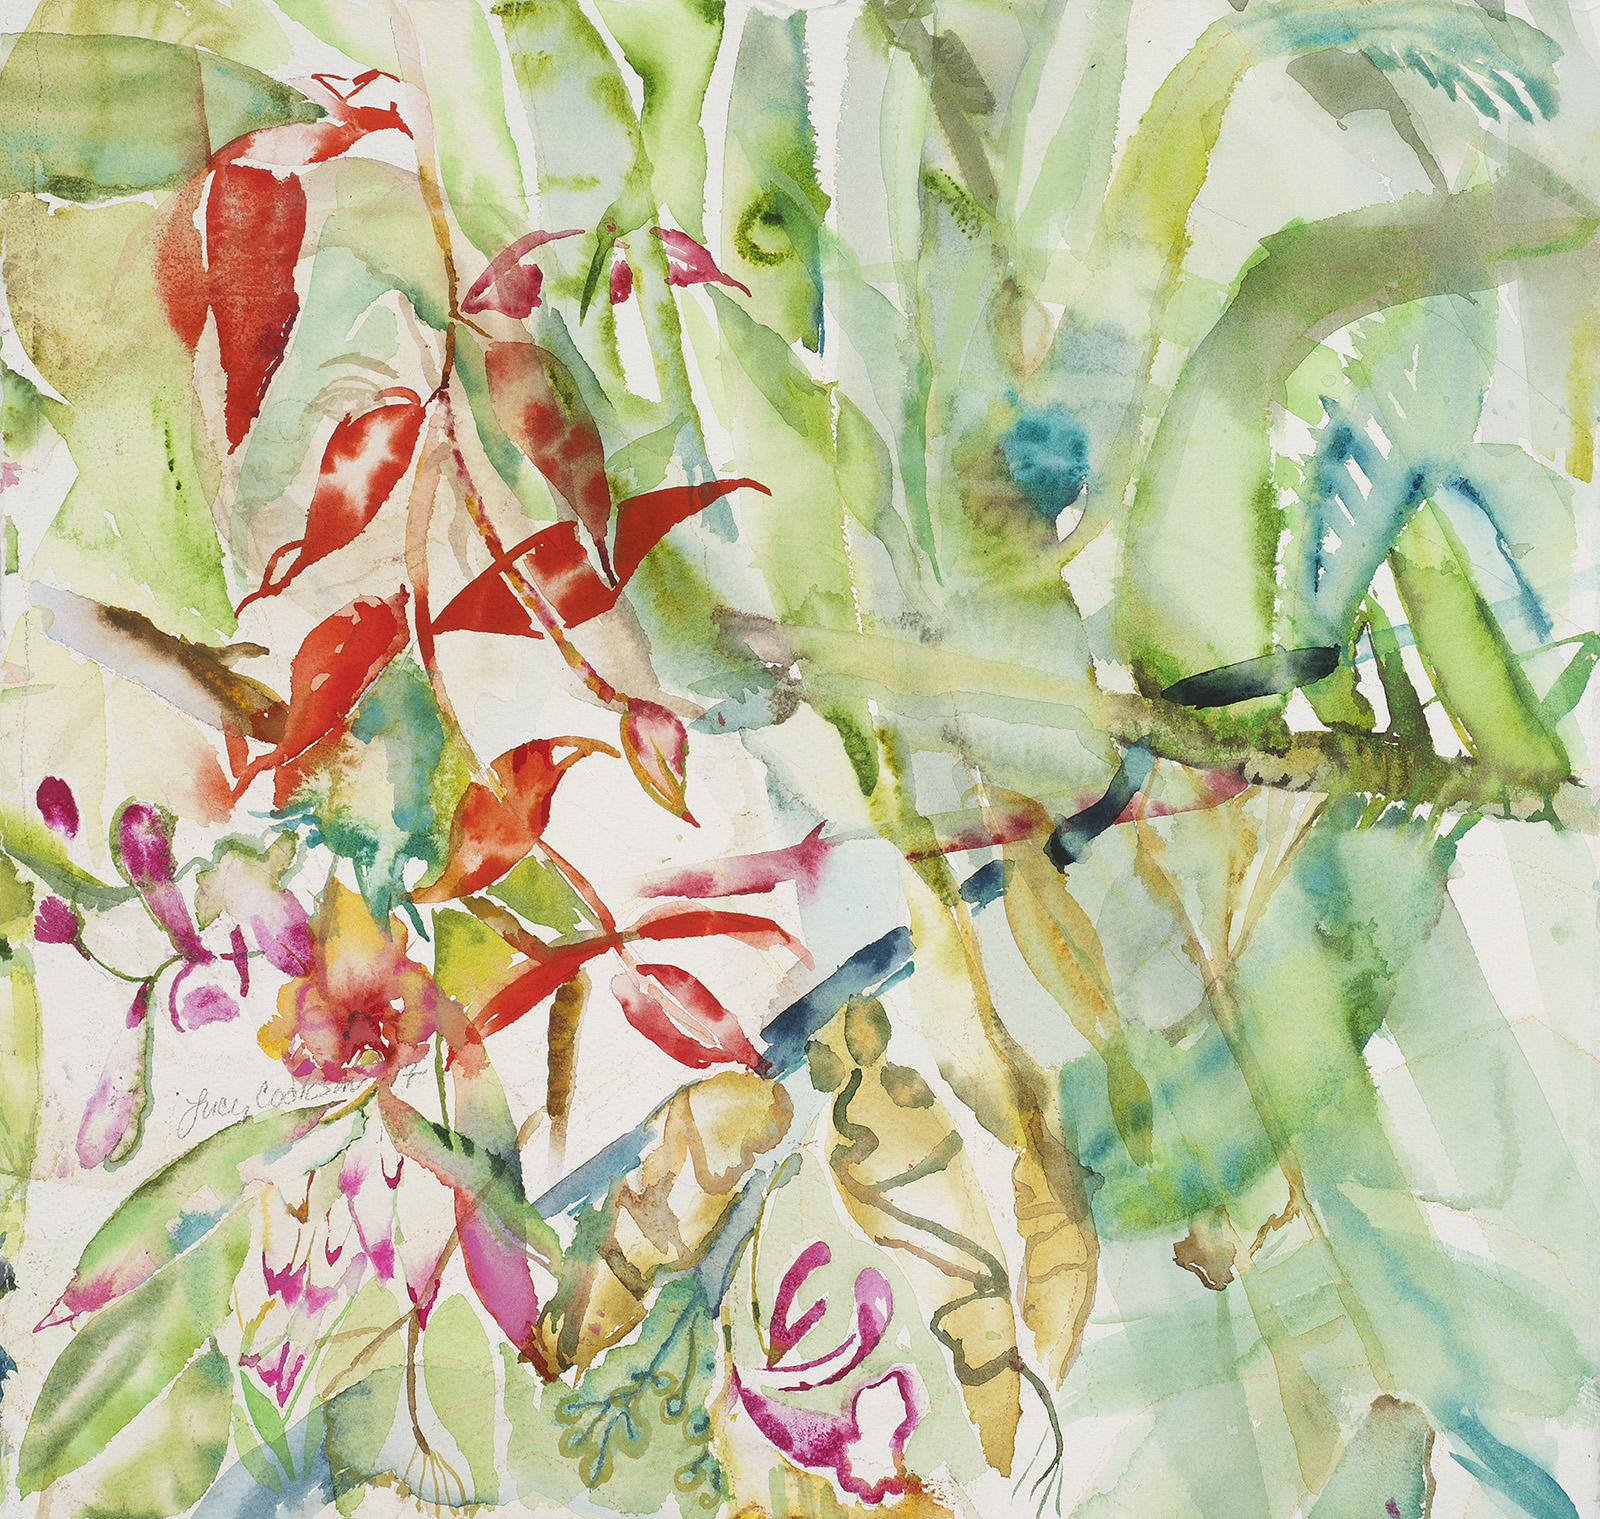 Leaves and Flowers, 2017, Watercolor on paper, 25 x 26 in.